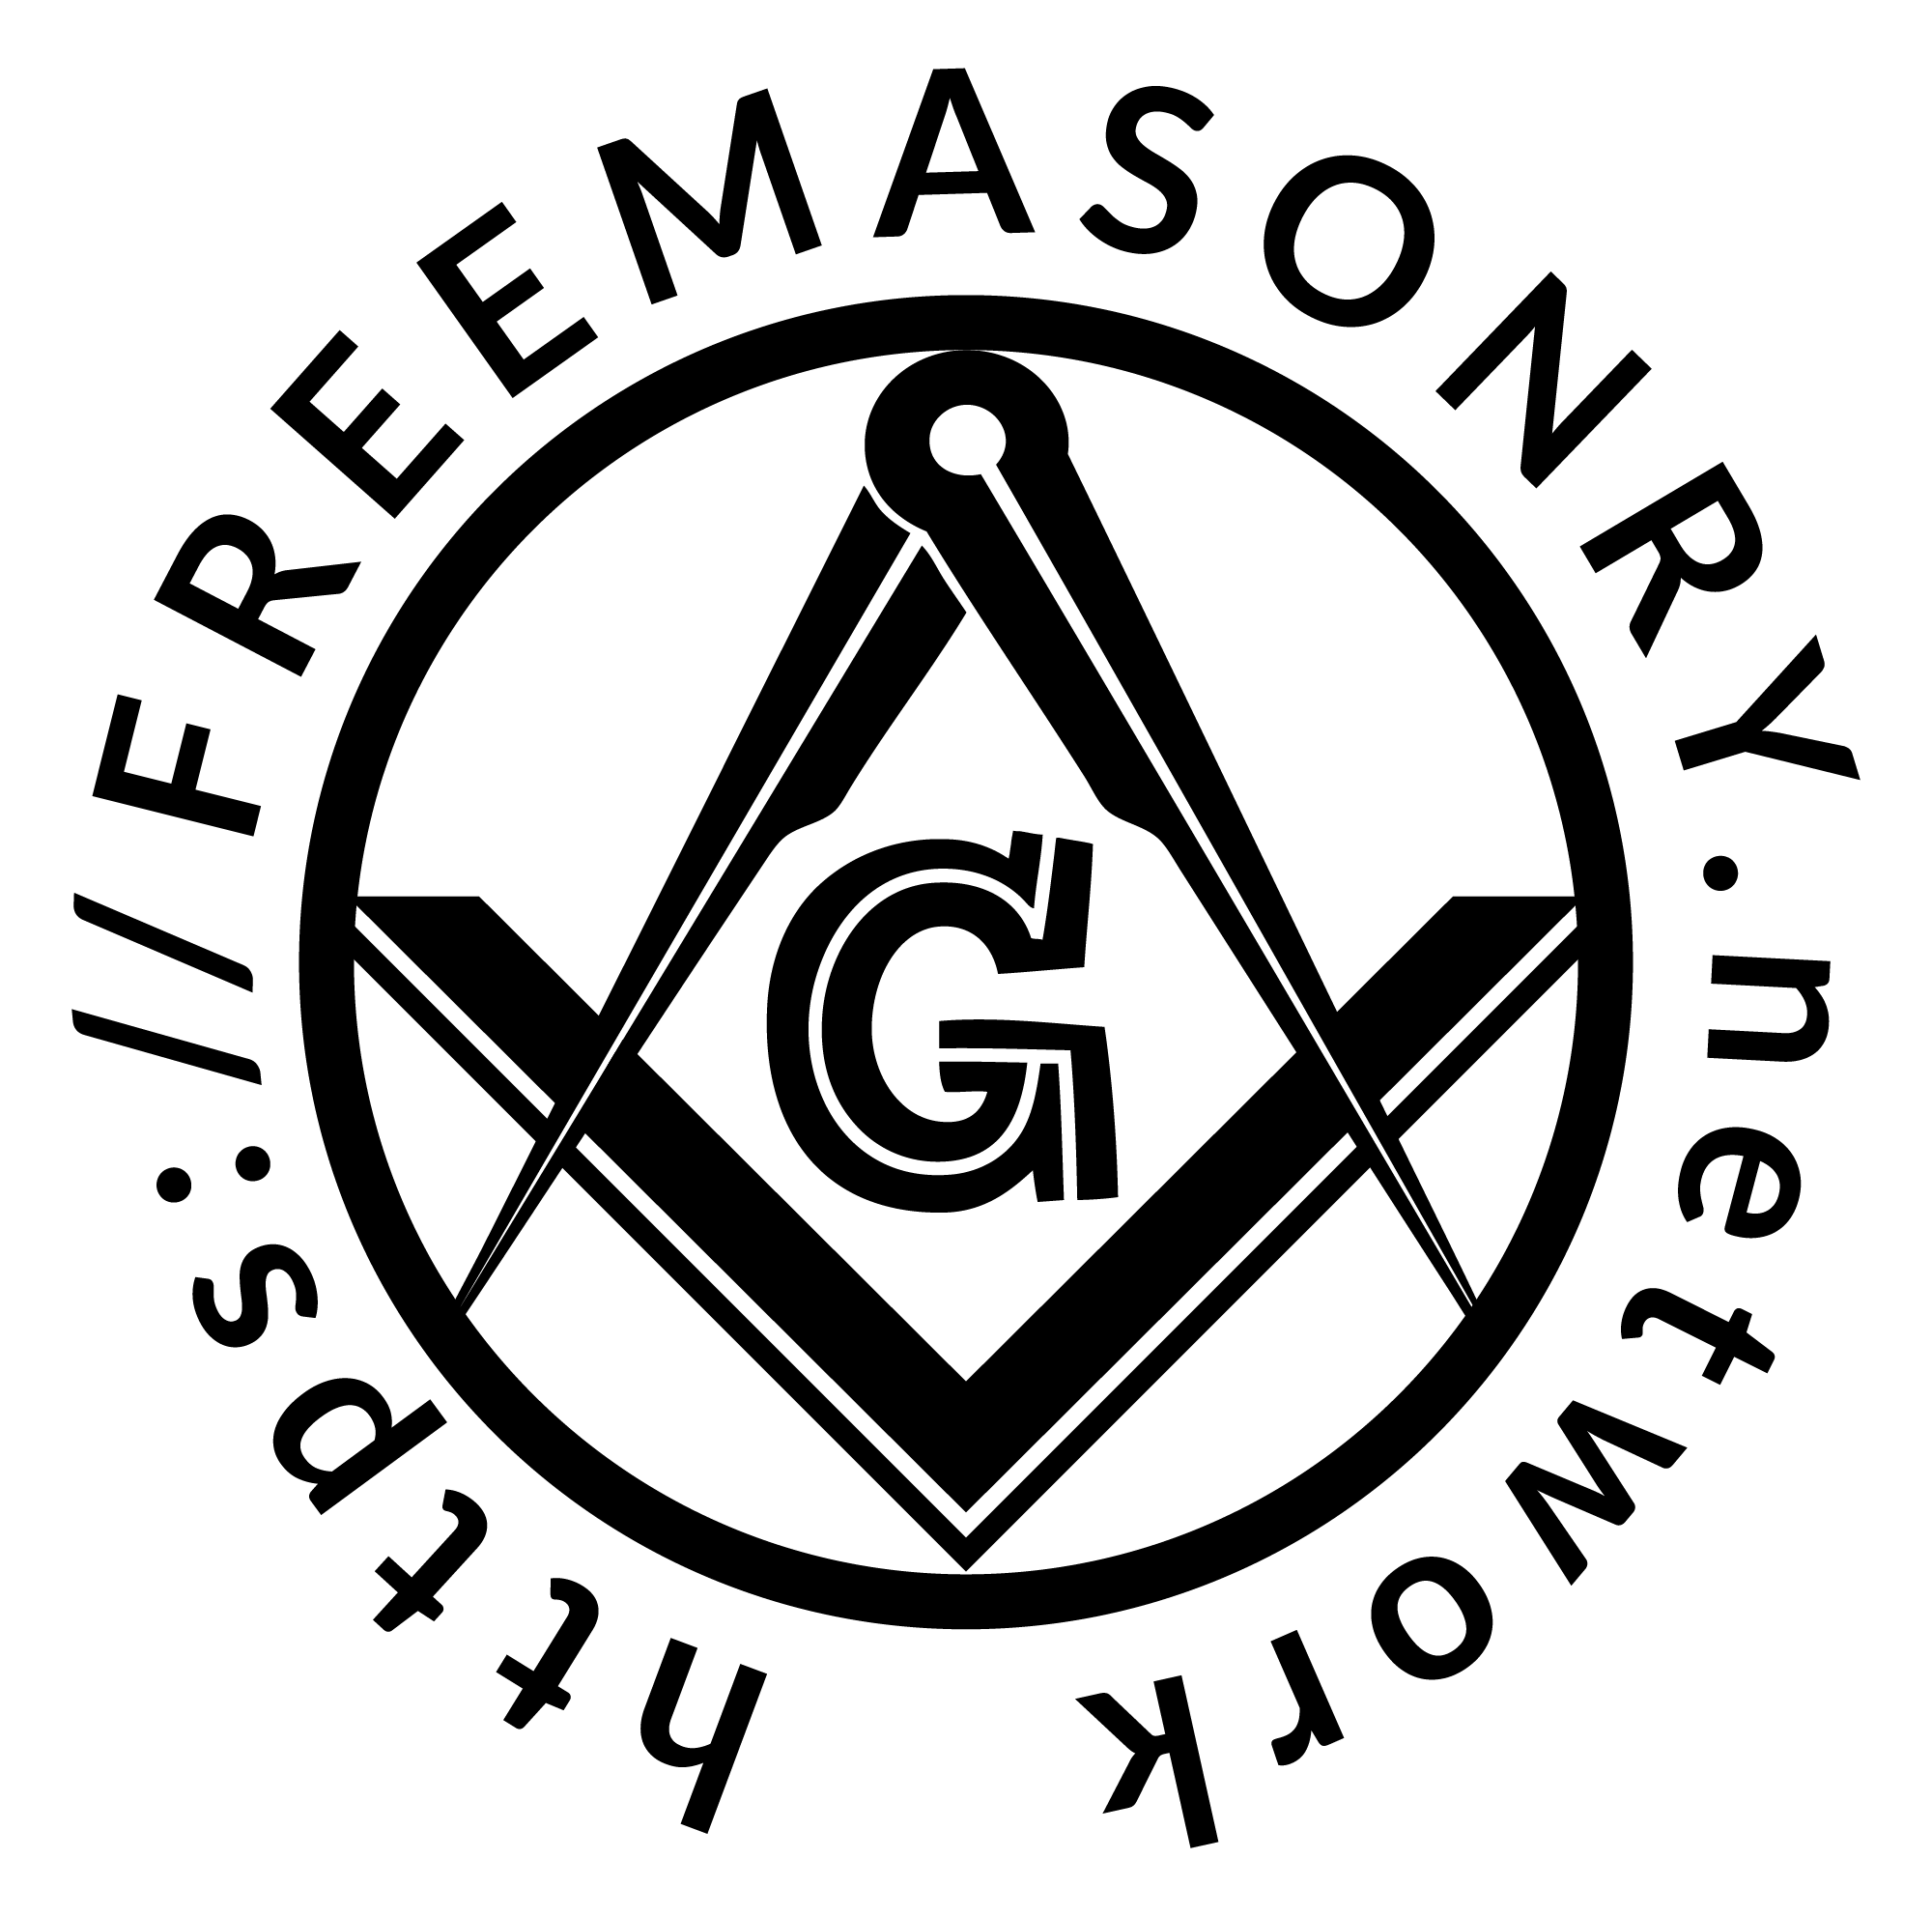 FAMOUS MASONS AT SIGHT